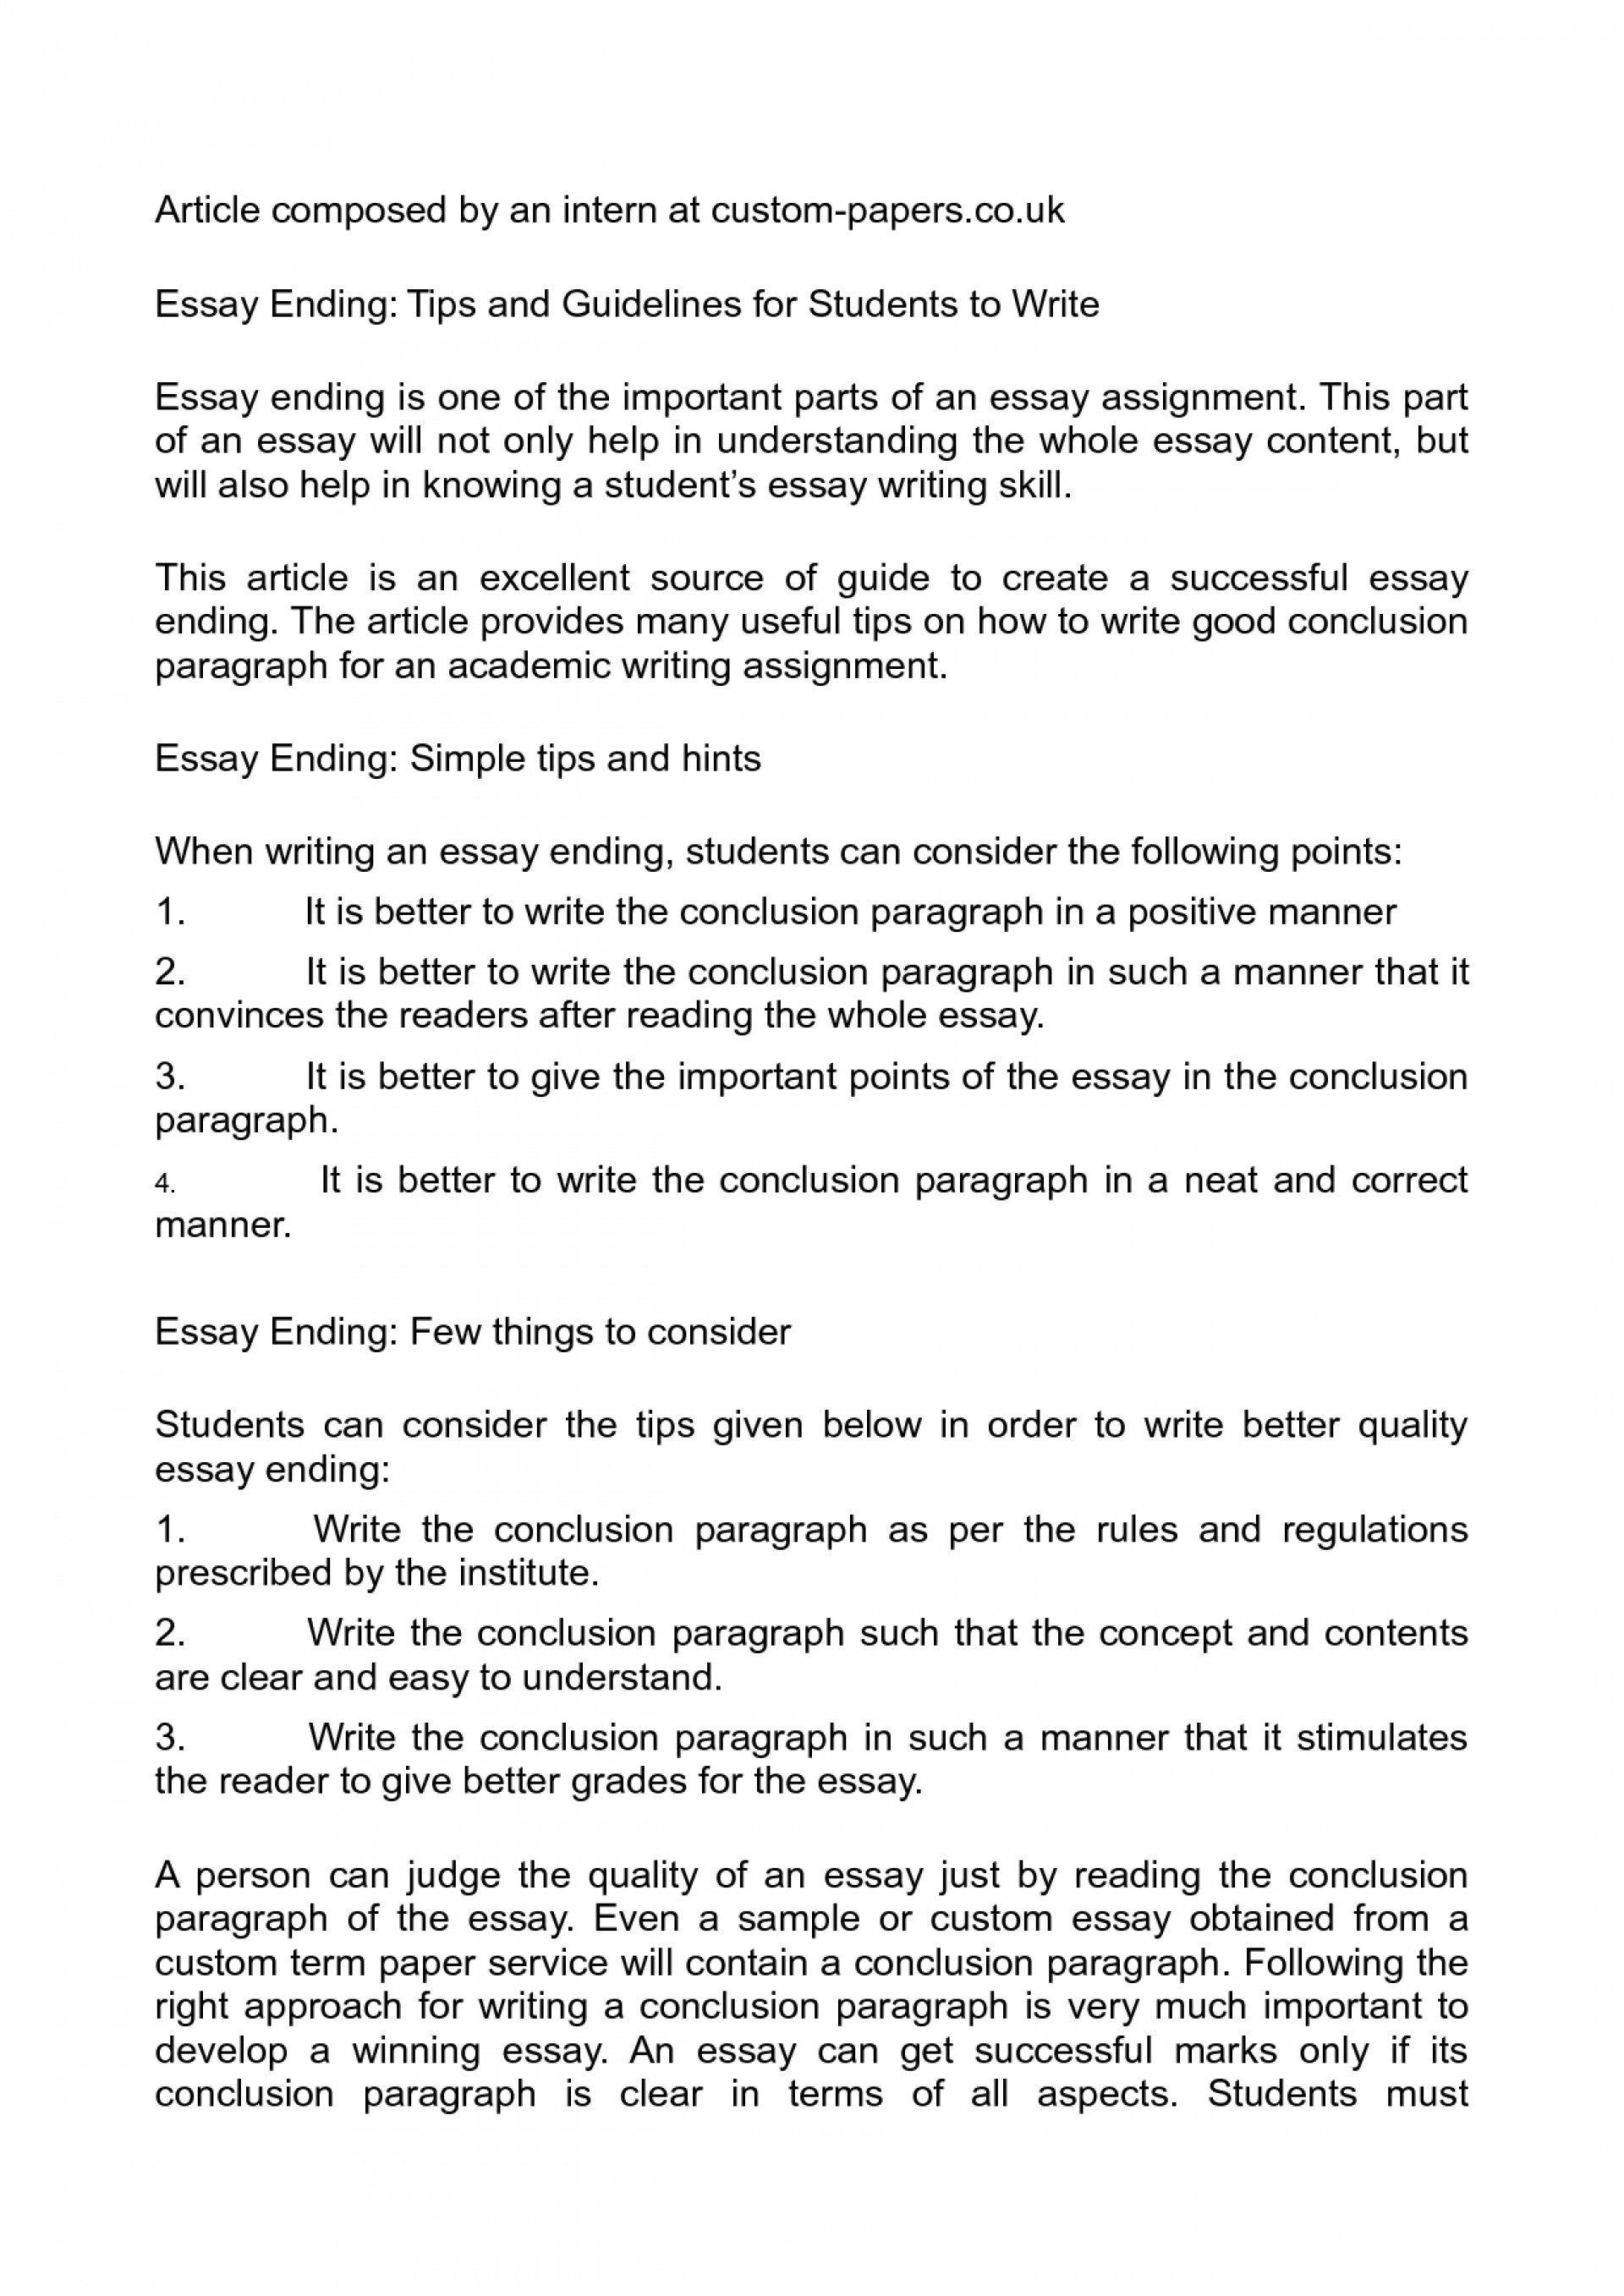 001 Pzwnxlang9 Ending An Essay Excellent Ways To End Expository With A Rhetorical Question 1920